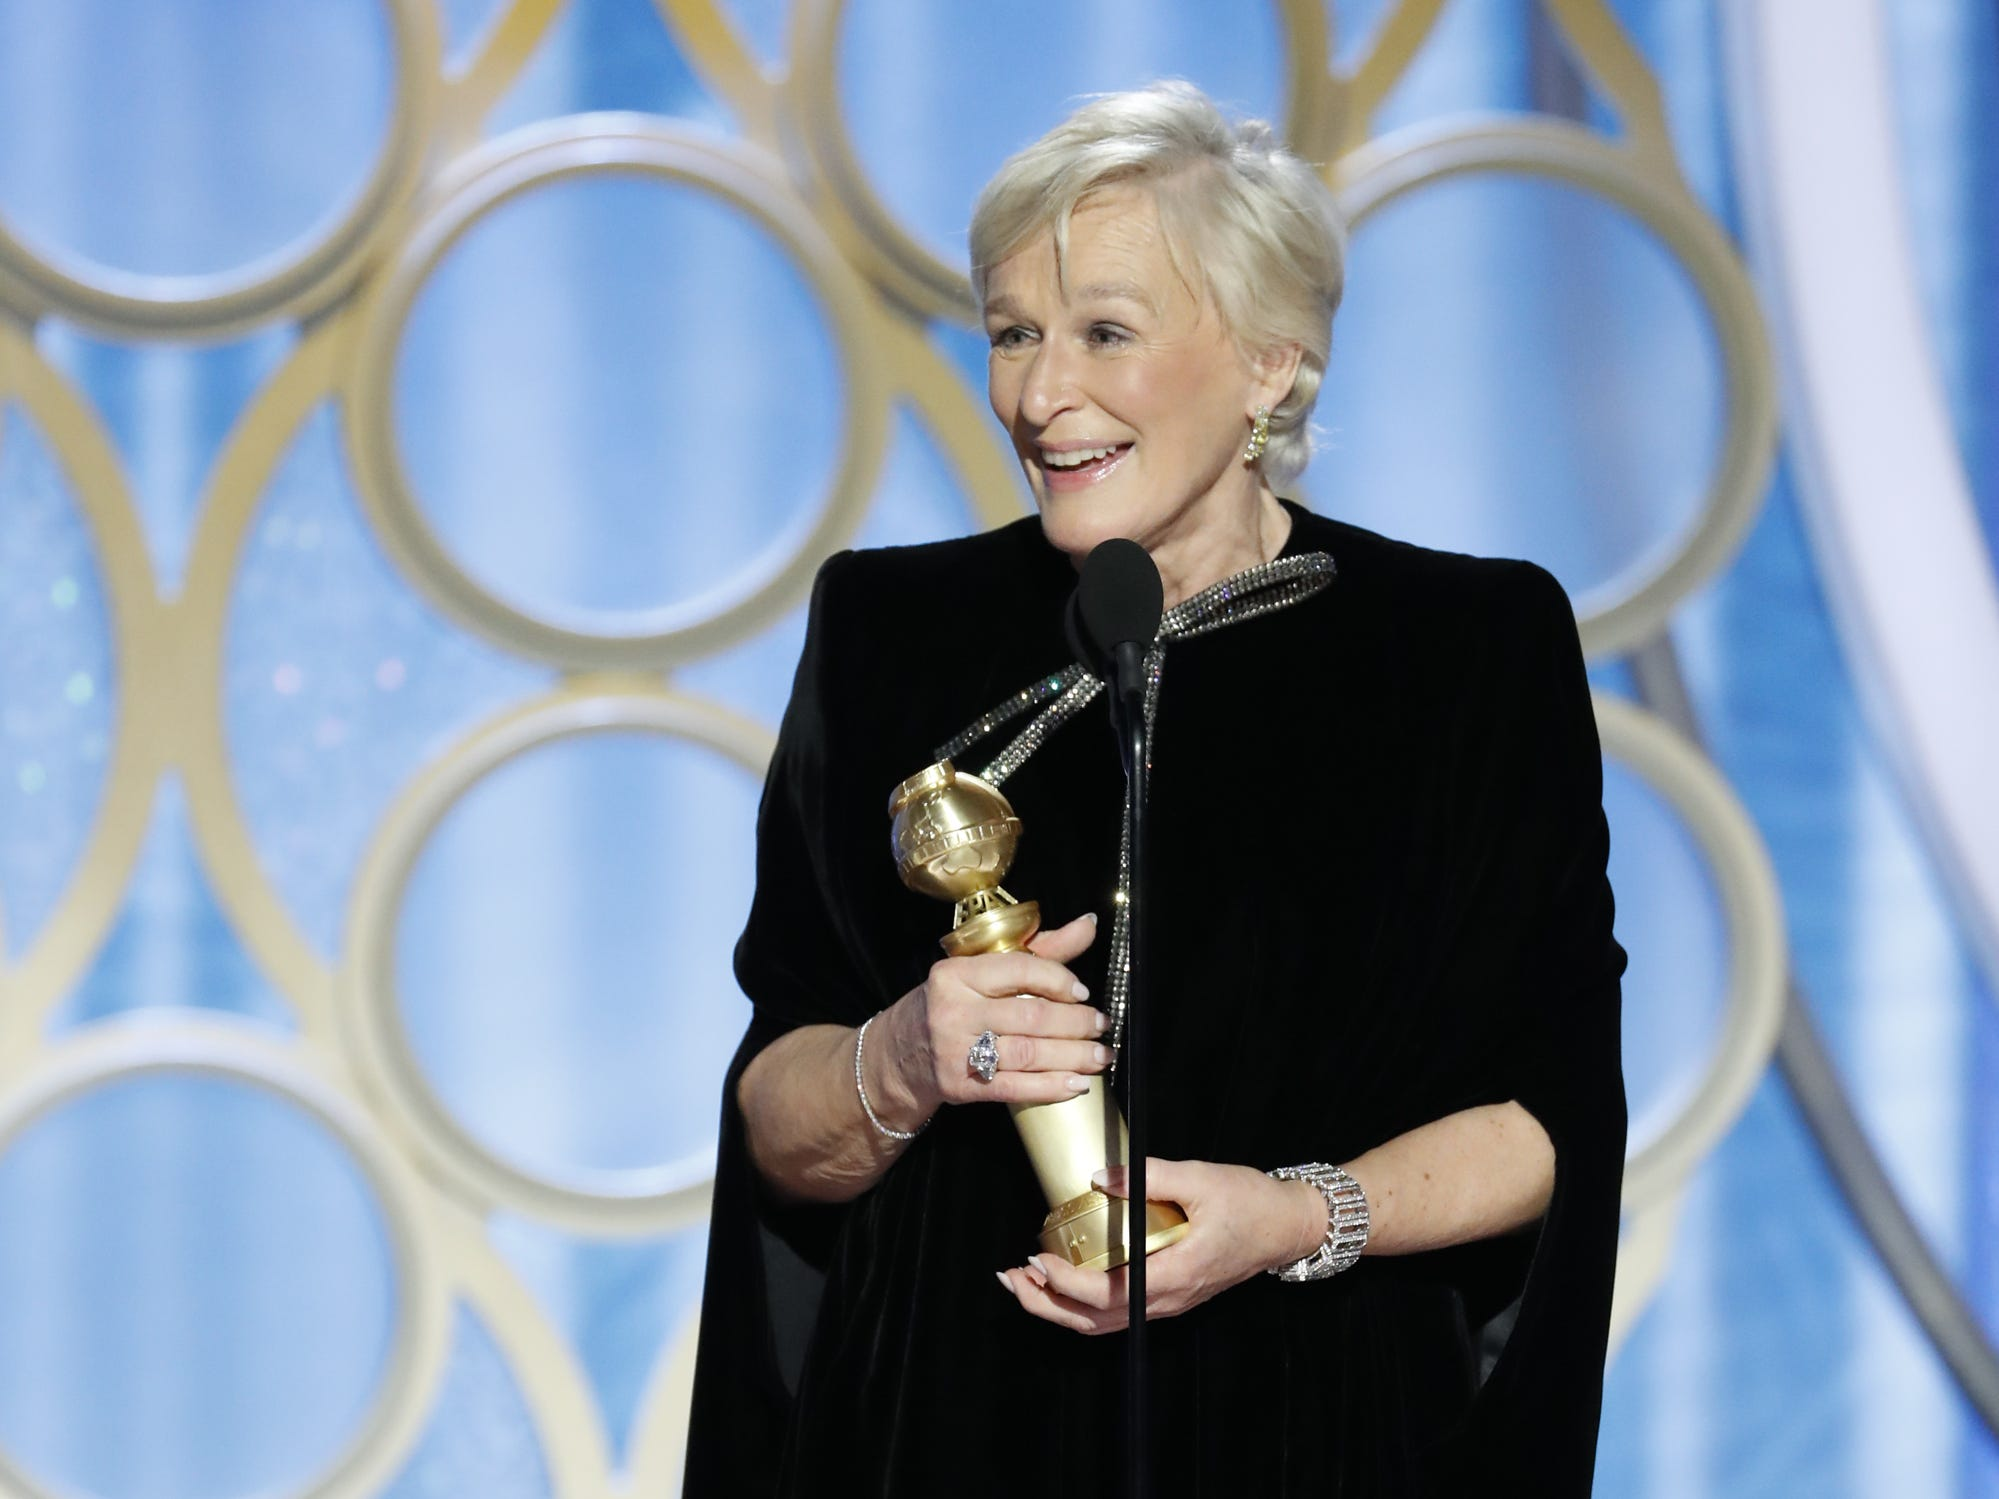 Glenn Close accepts the award for Best Actress - Motion Picture, Drama during the 76th Golden Globe Awards.